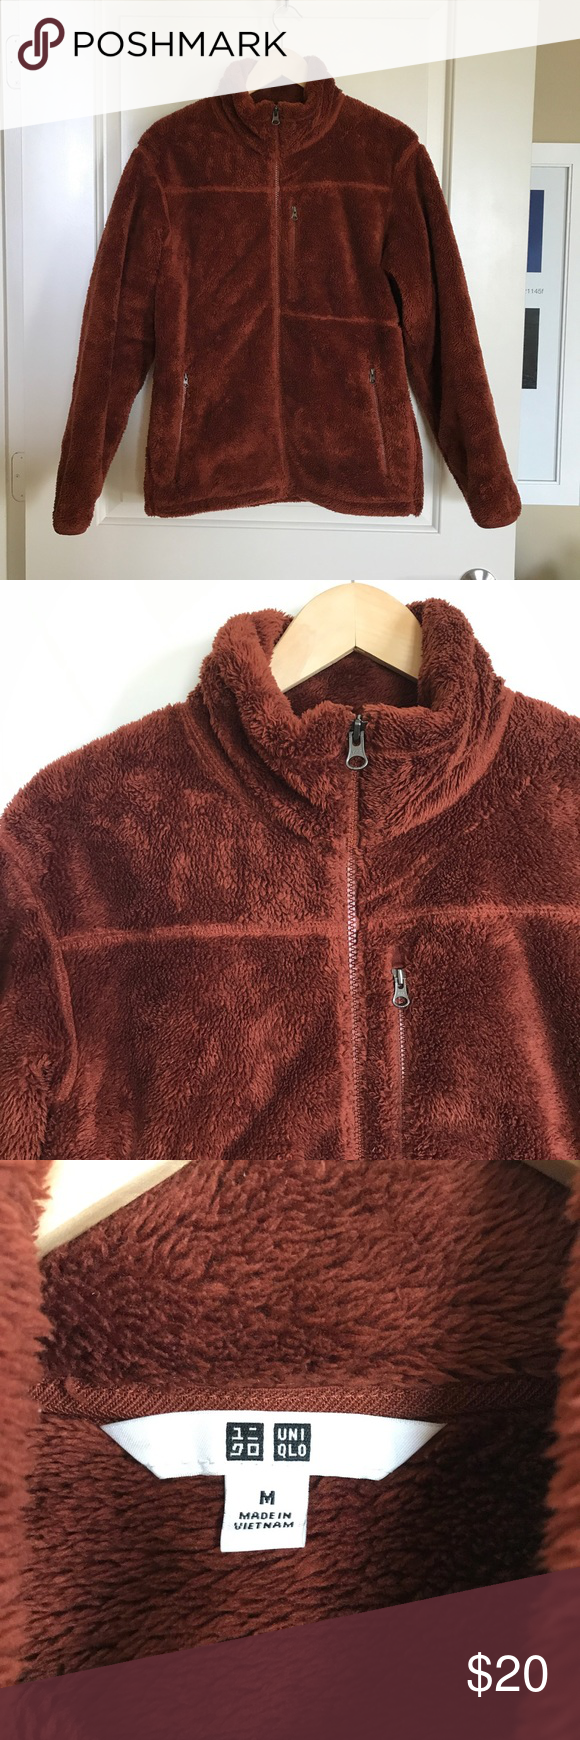 Warm and cozy with fleece clothing